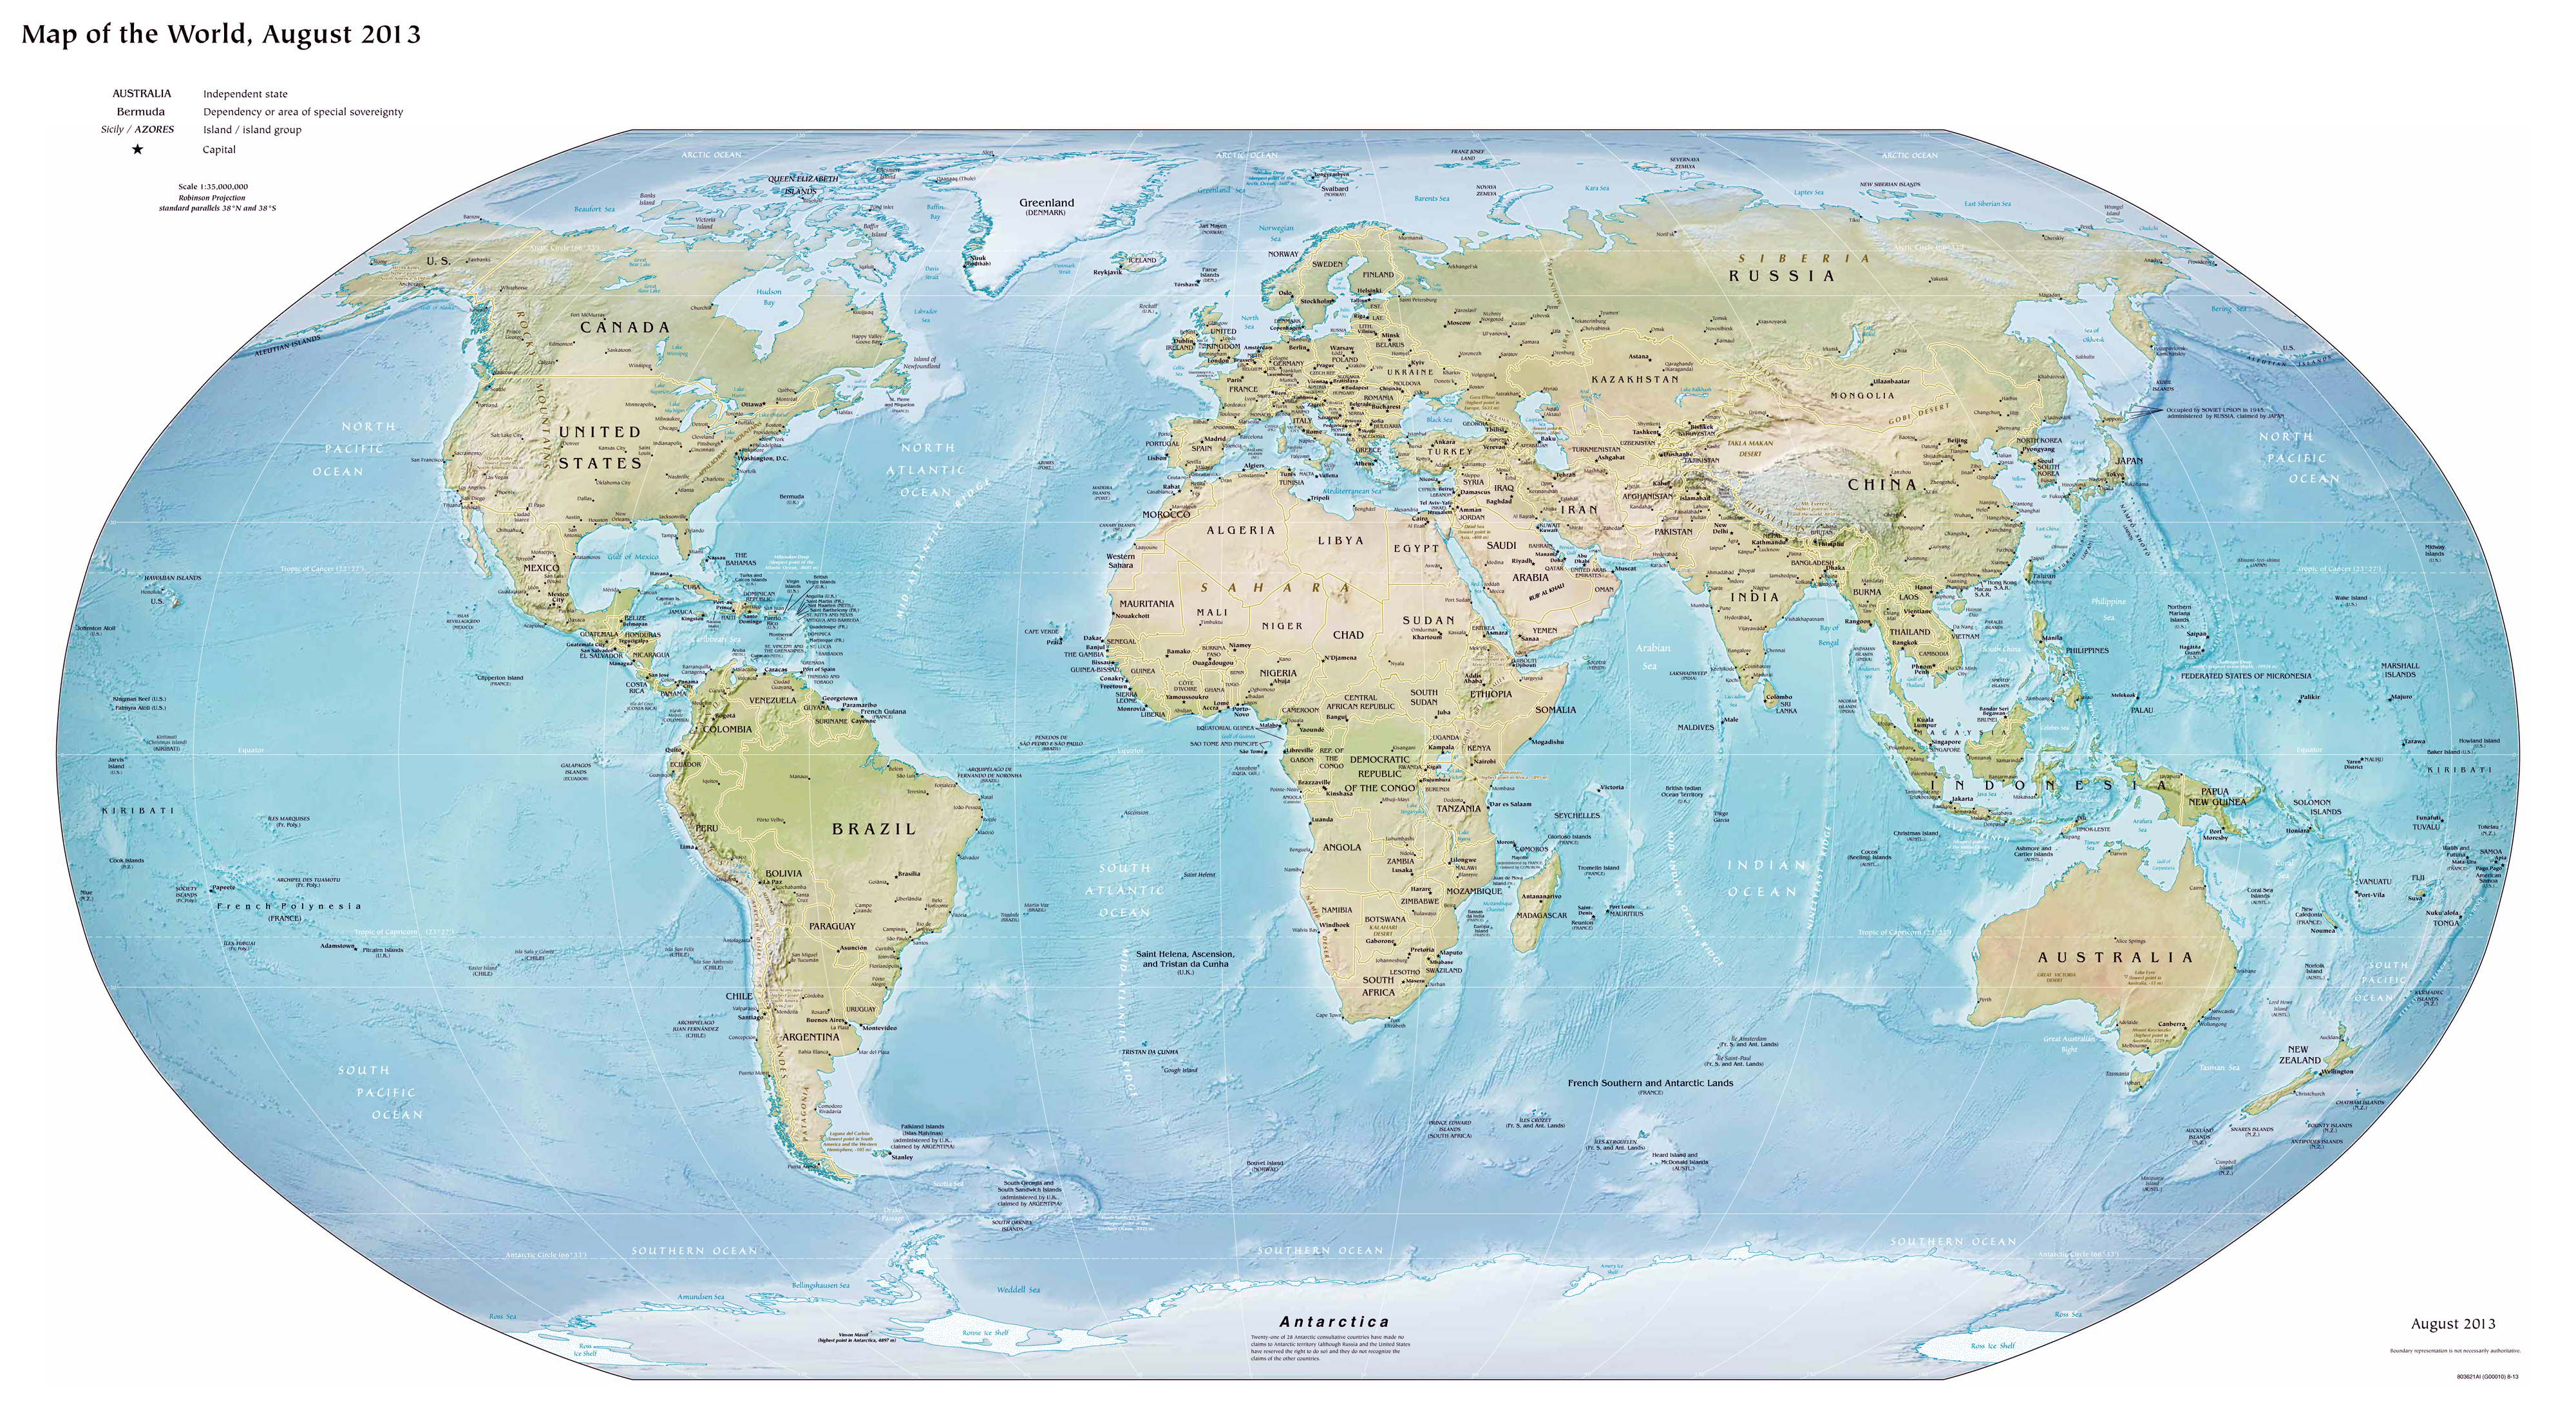 Image of: Large Detailed Political Map Of The World With Relief And Major Cities 2013 World Mapsland Maps Of The World